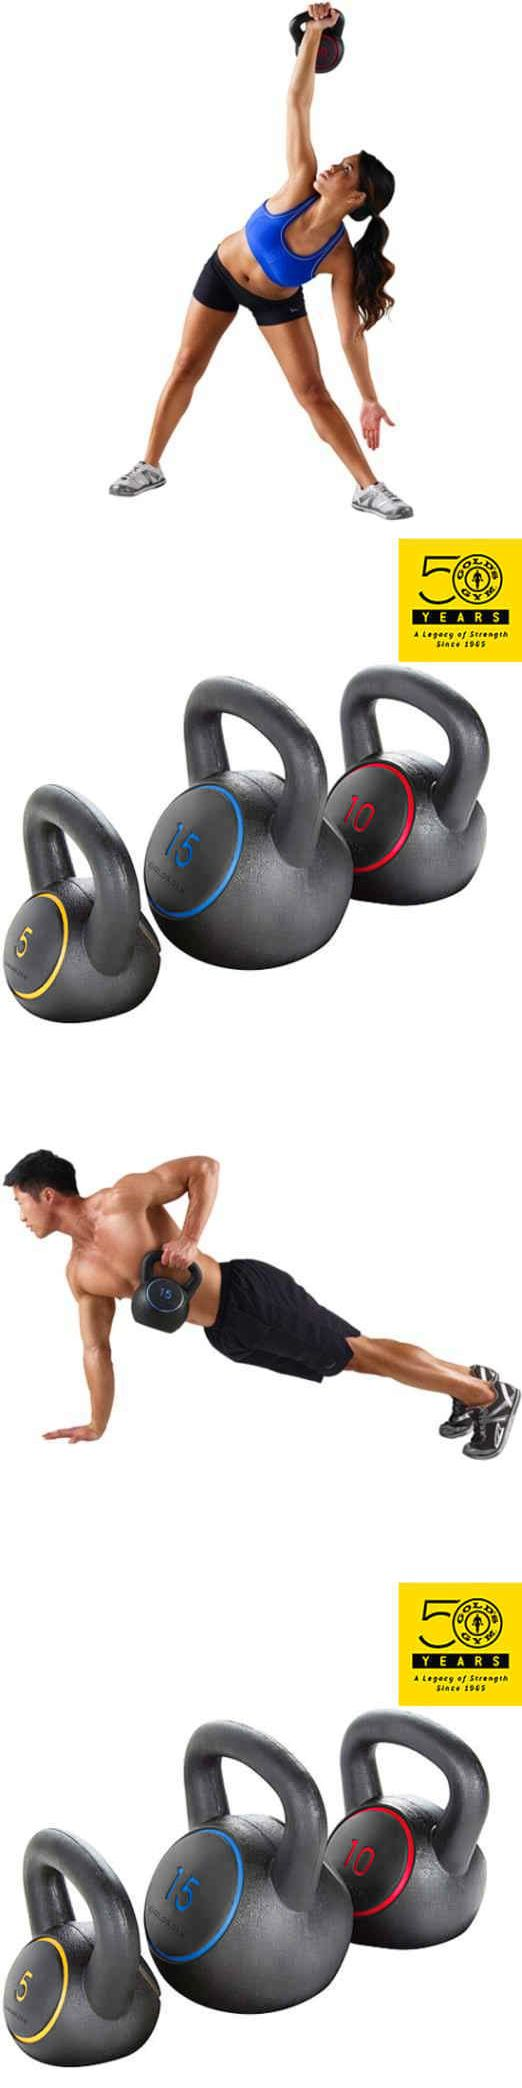 Kettlebells 179814: Golds Gym Kettlebell Kit Home Gym Strength Exercise Training Equipment Workout BUY IT NOW ONLY: $45.62